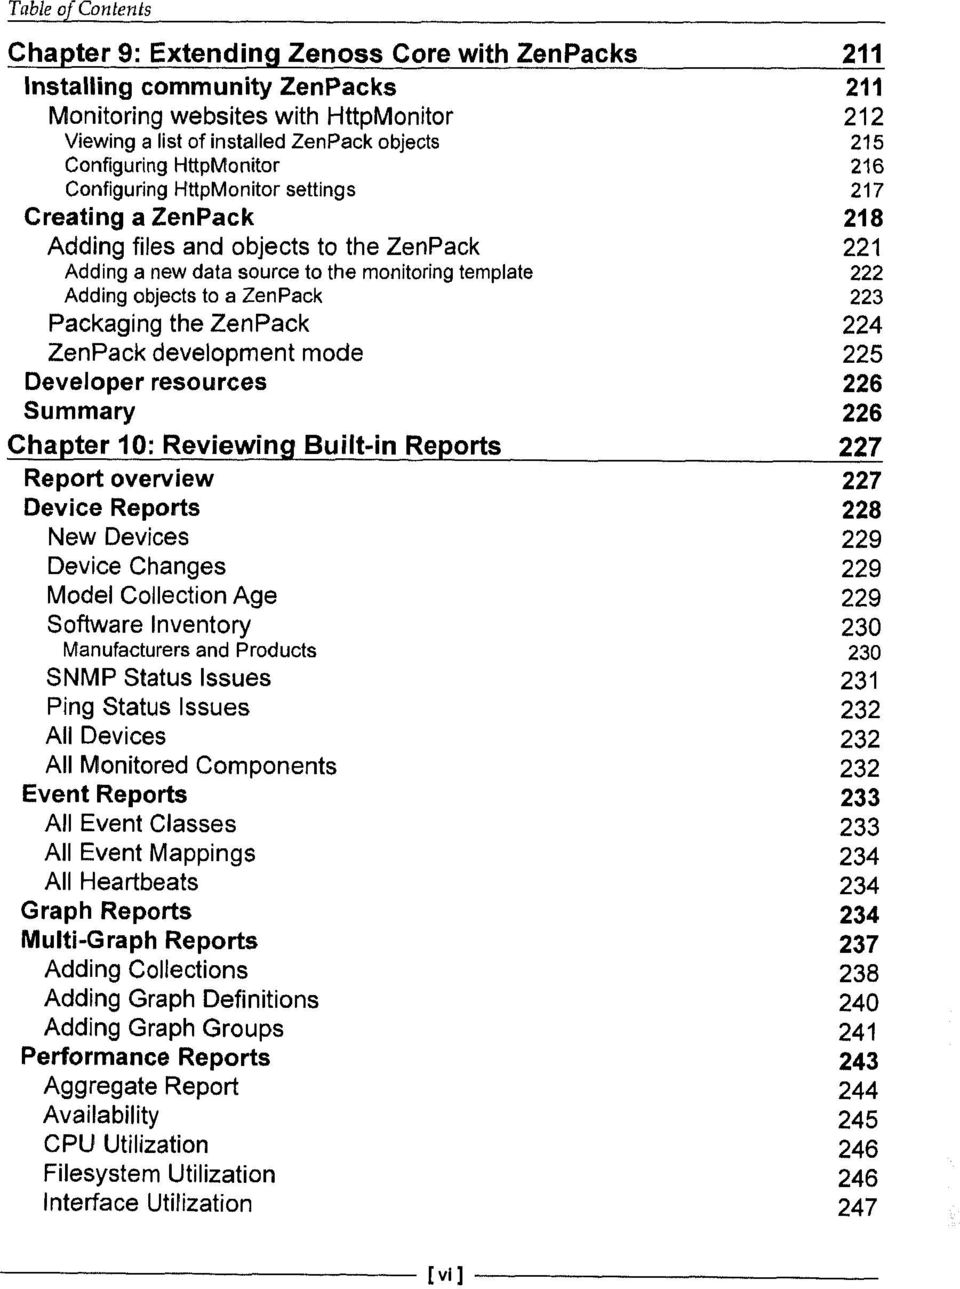 Packaging the ZenPack 224 ZenPack development mode 225 Developer resources 226 Summary 226 Chapter 10: Reviewing Built-in Reports 227 Report overview 227 Device Reports 228 New Devices 229 Device